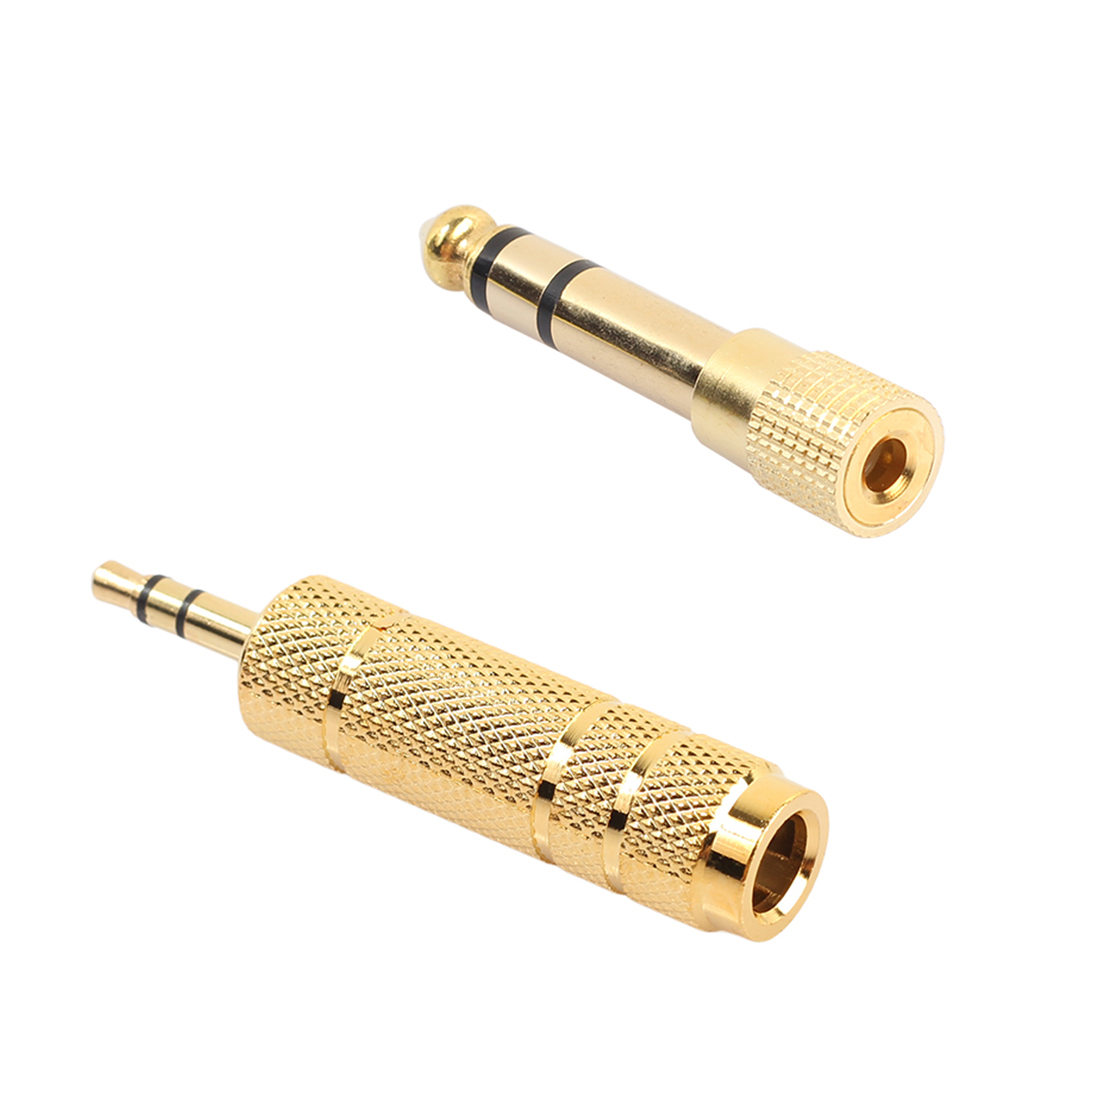 centechia 4pcs Gold 6 5mm 1 4 quot Male to 3 5mm Female Audio Adapter 6 35 mm Jack Stereo Converter Cable For Microphone